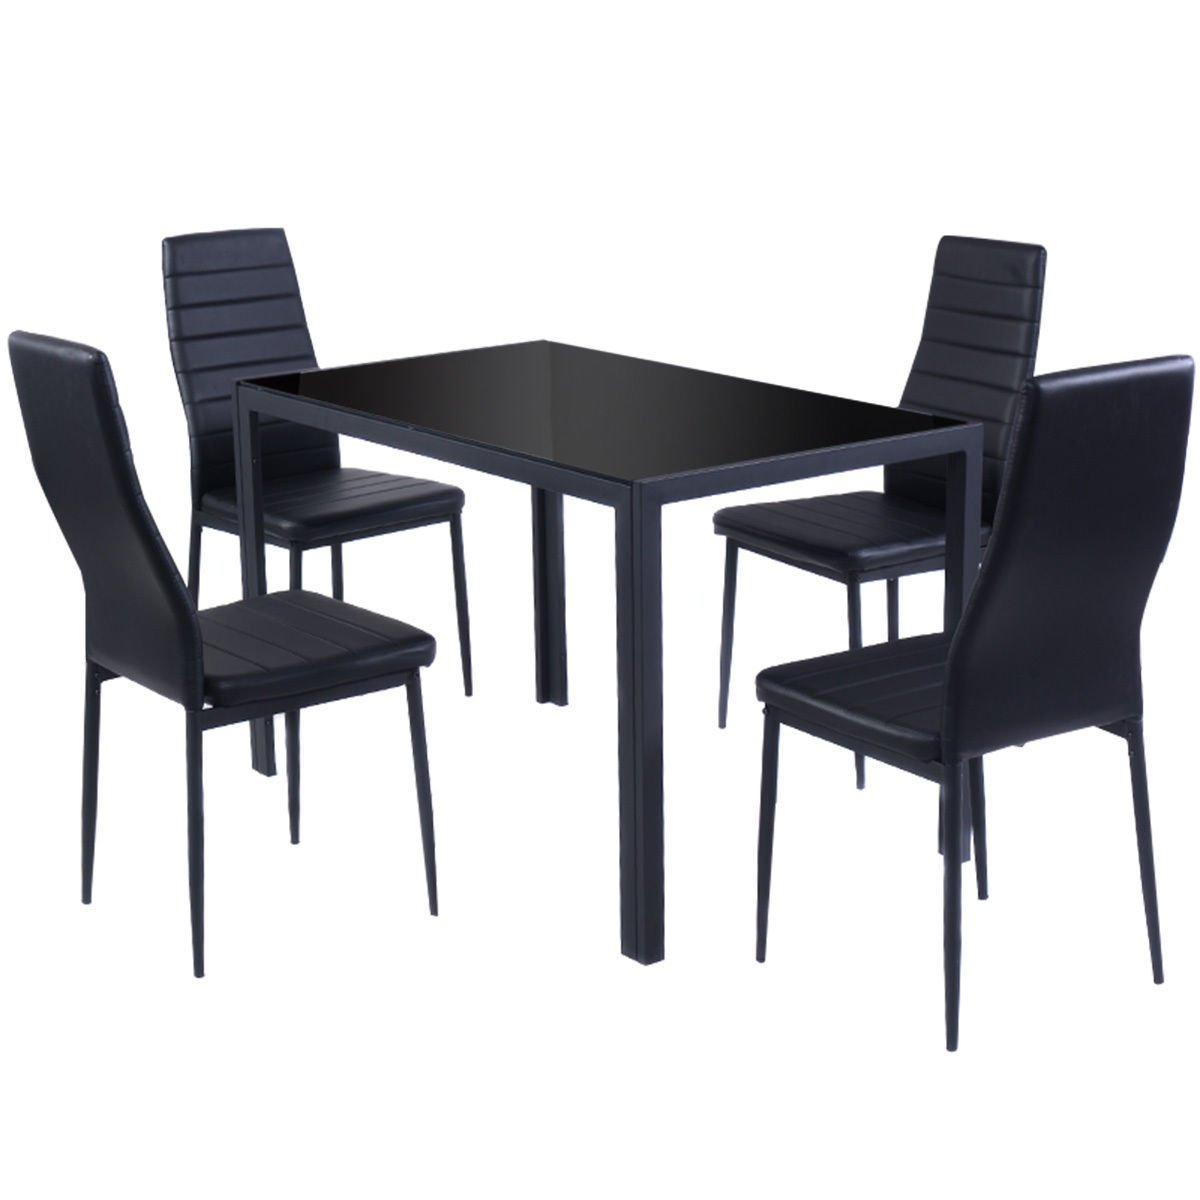 Dining table sets 4 chairs - Giantex 5 Piece Kitchen Dining Set Glass Metal Table And 4 Chairs Breakfast Furniture